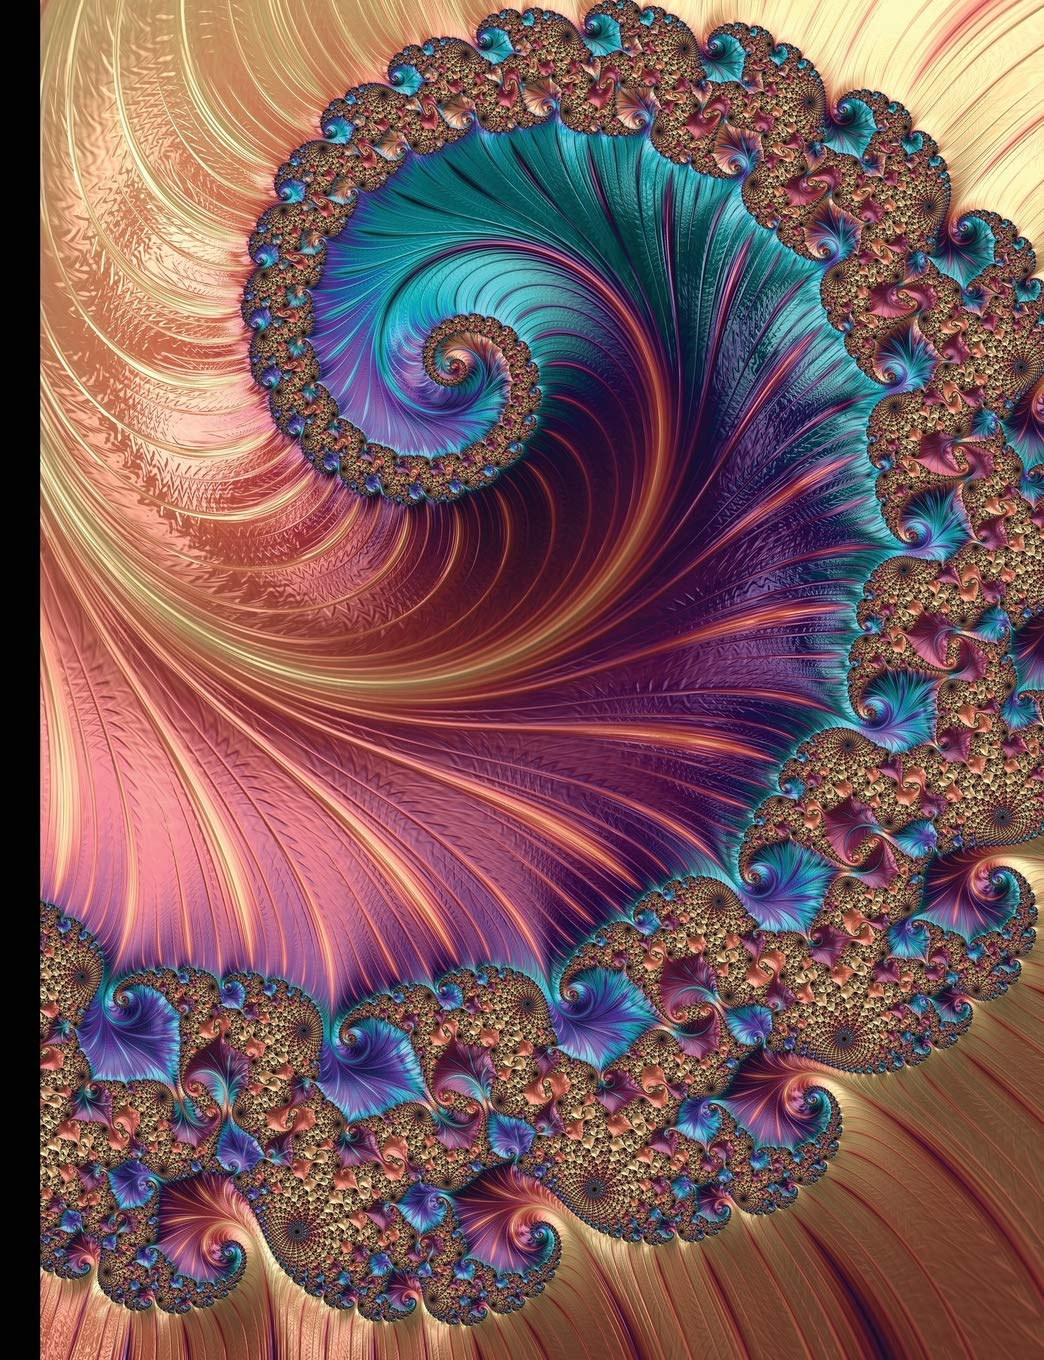 Composition Notebook - College Ruled, 100 Sheets: Mandelbrot ...